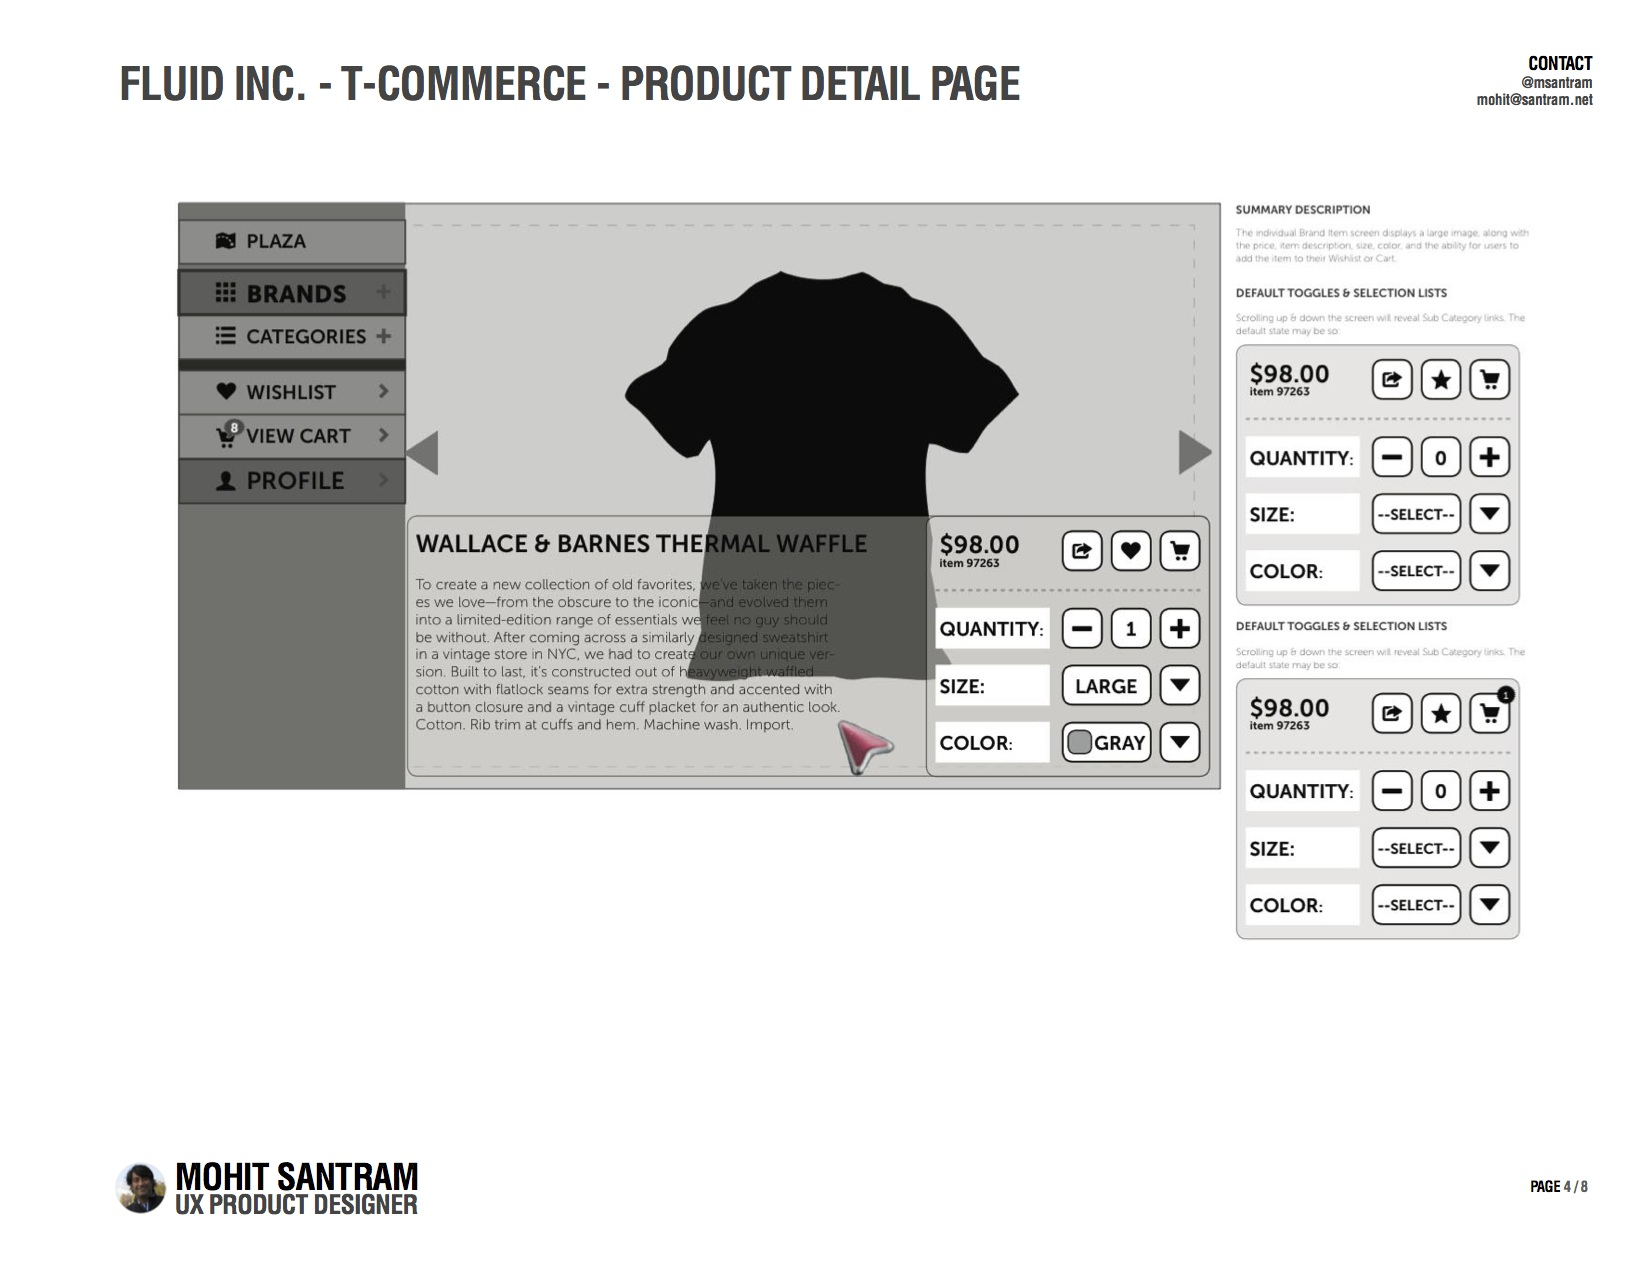 T-Commerce Product Detail Page